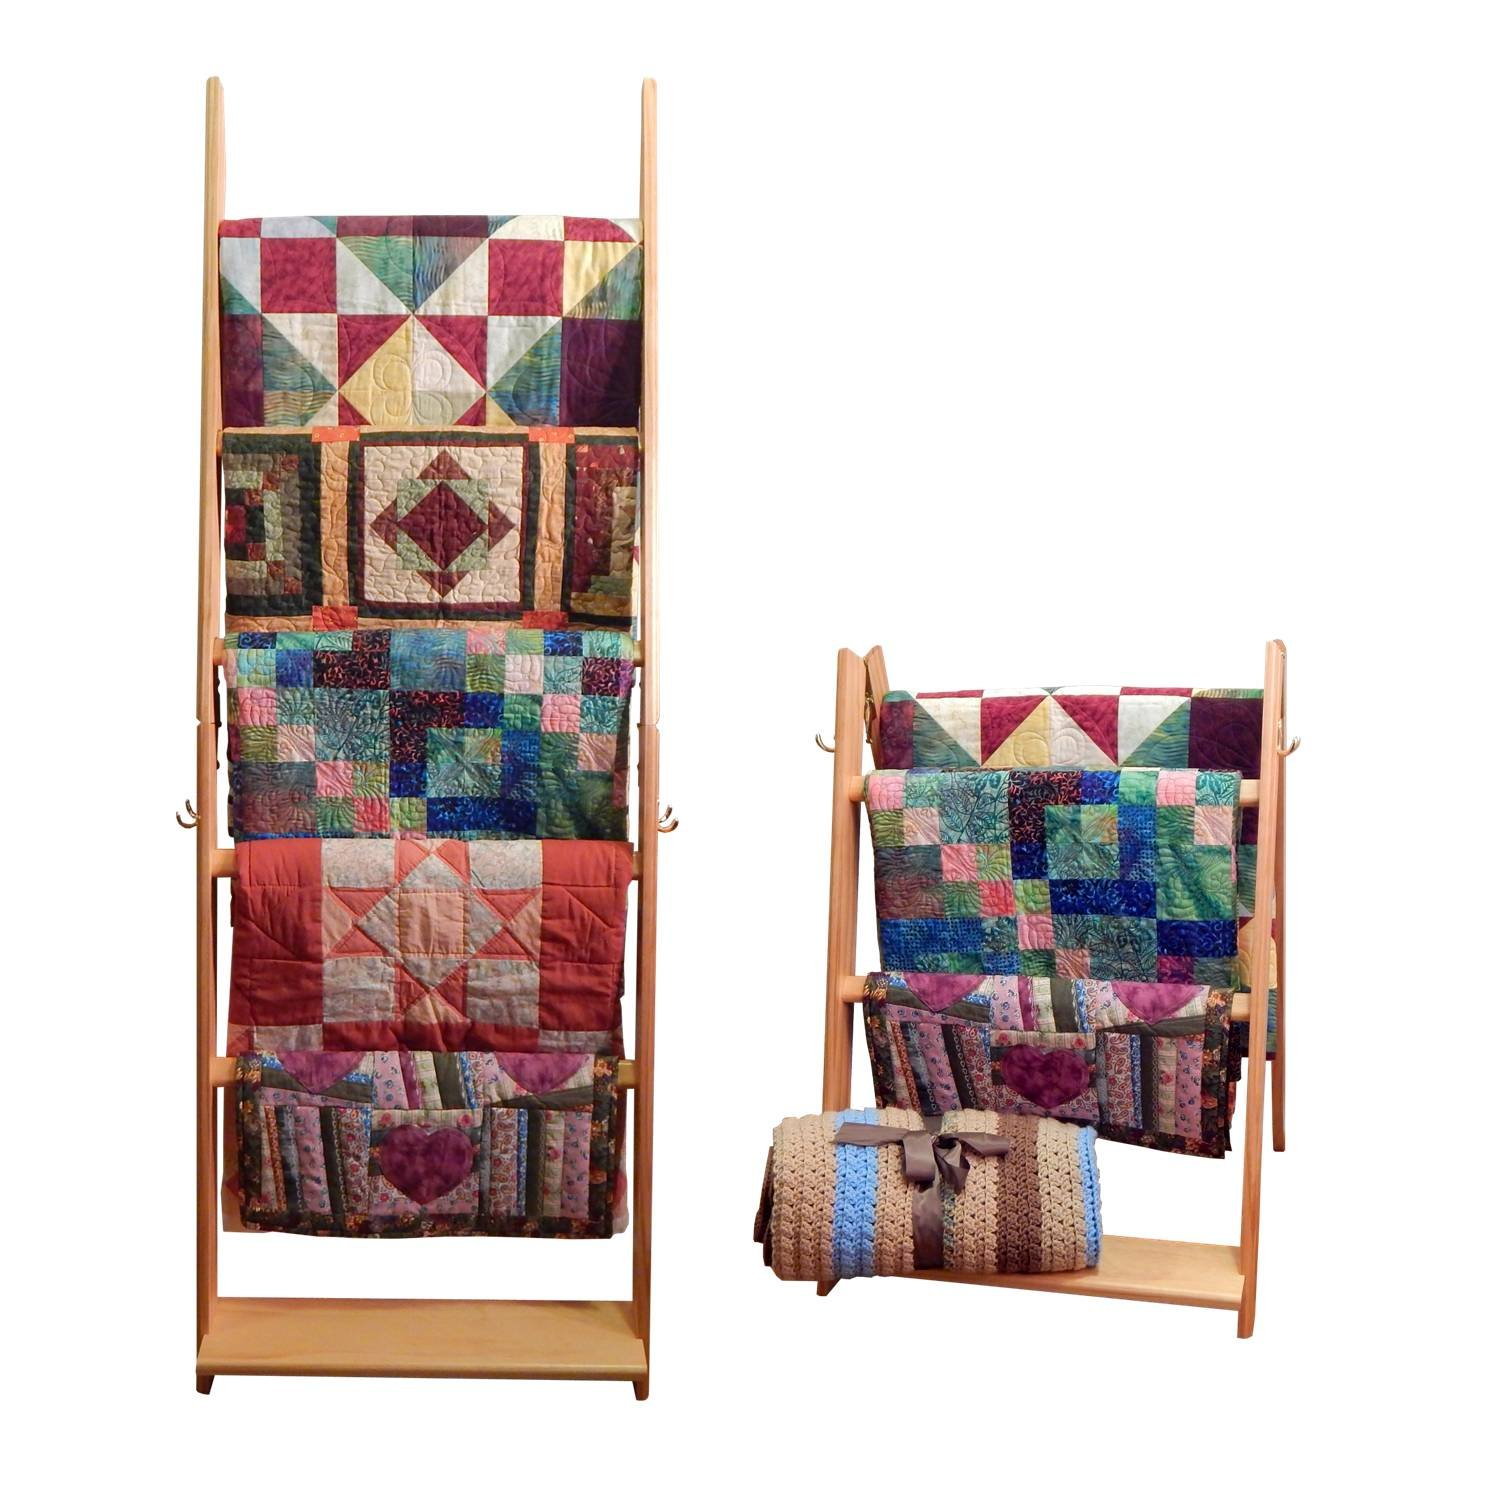 Built by Briick Quilting The LadderRack 2-in-1 Quilt Display Rack (5 Rung/24 Model/Golden Pecan)